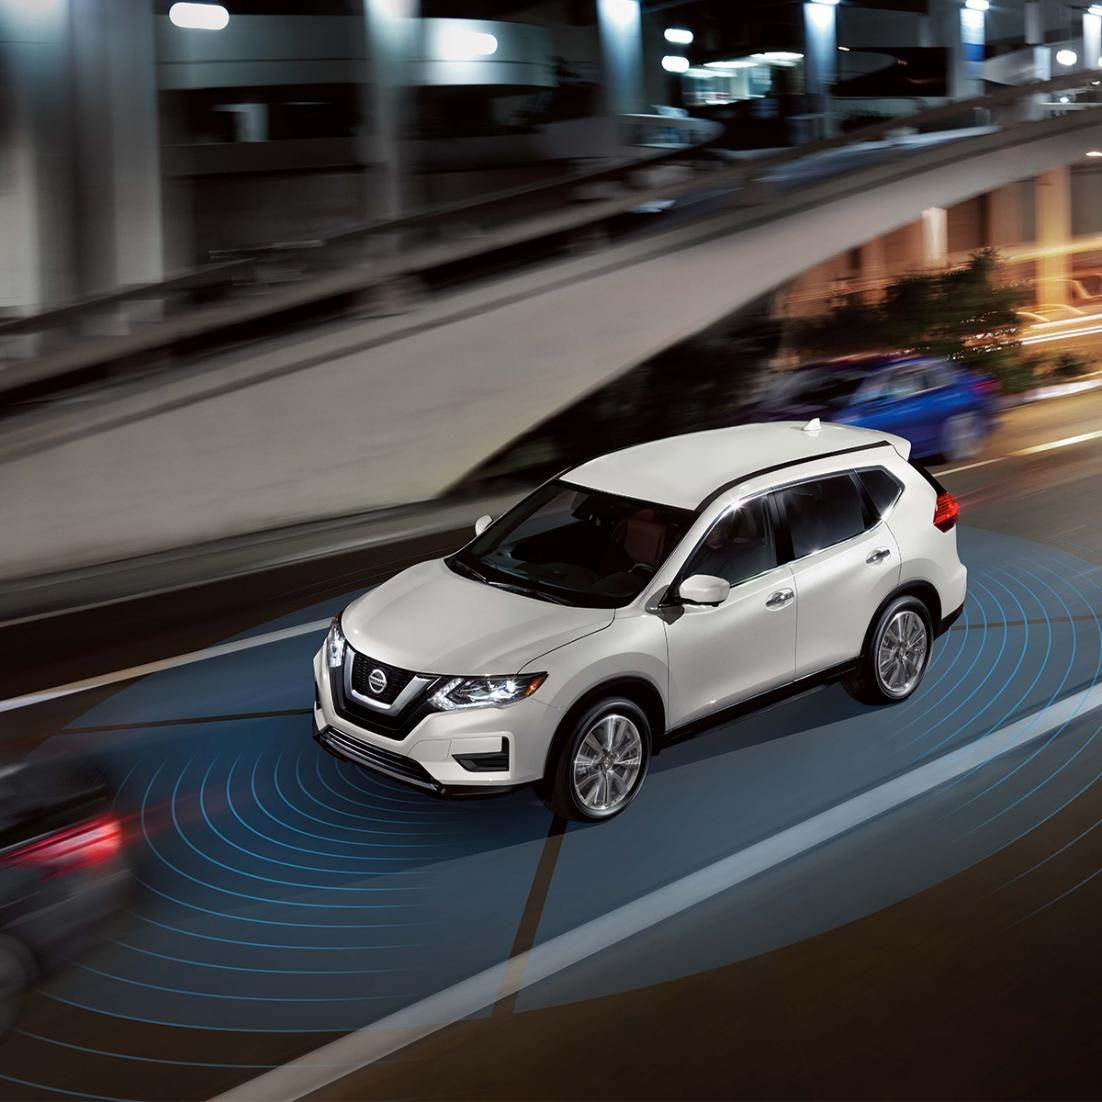 Stay Safe On The Roads This Weekend There S An Increase In Travelers During The 4th Of July Weekend But Propilot Assi Nissan Rogue Nissan Nissan Rogue S